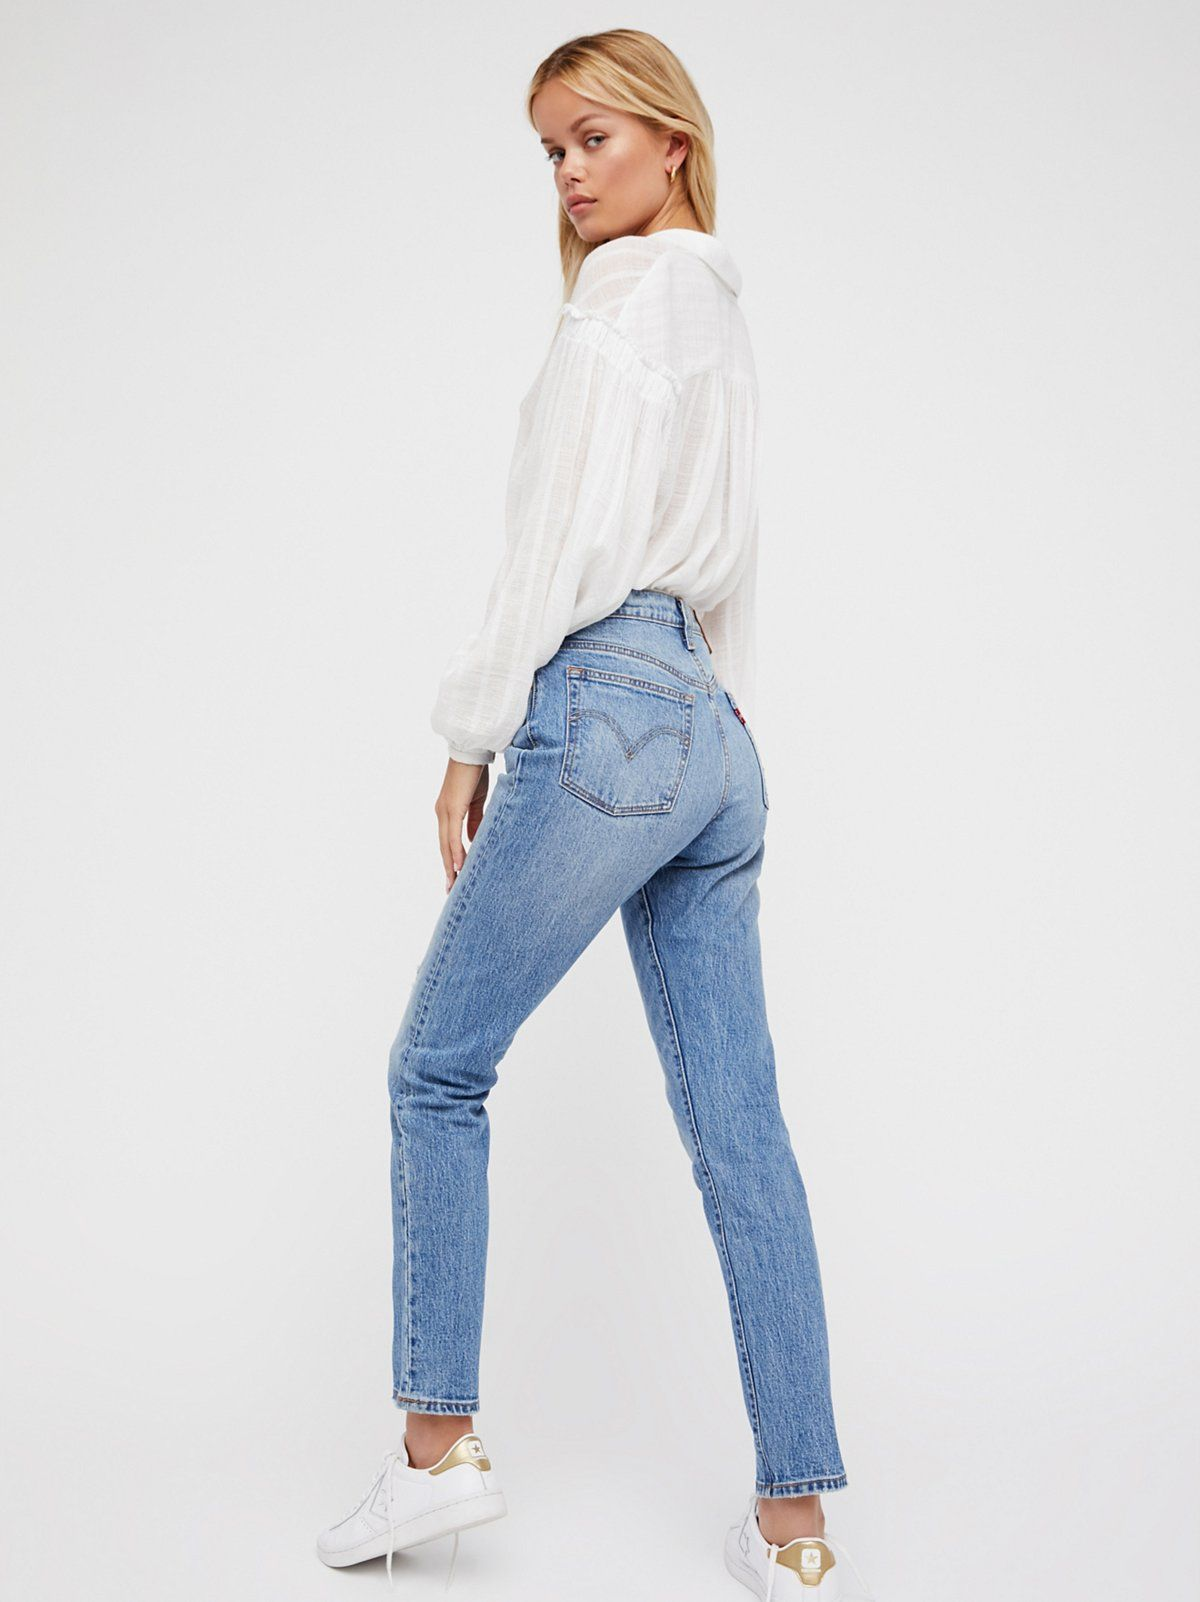 ed0f1dc97ad 501 Skinny Jeans | The iconic Levi's 501 has been reimagined with a slimmer  skinny leg